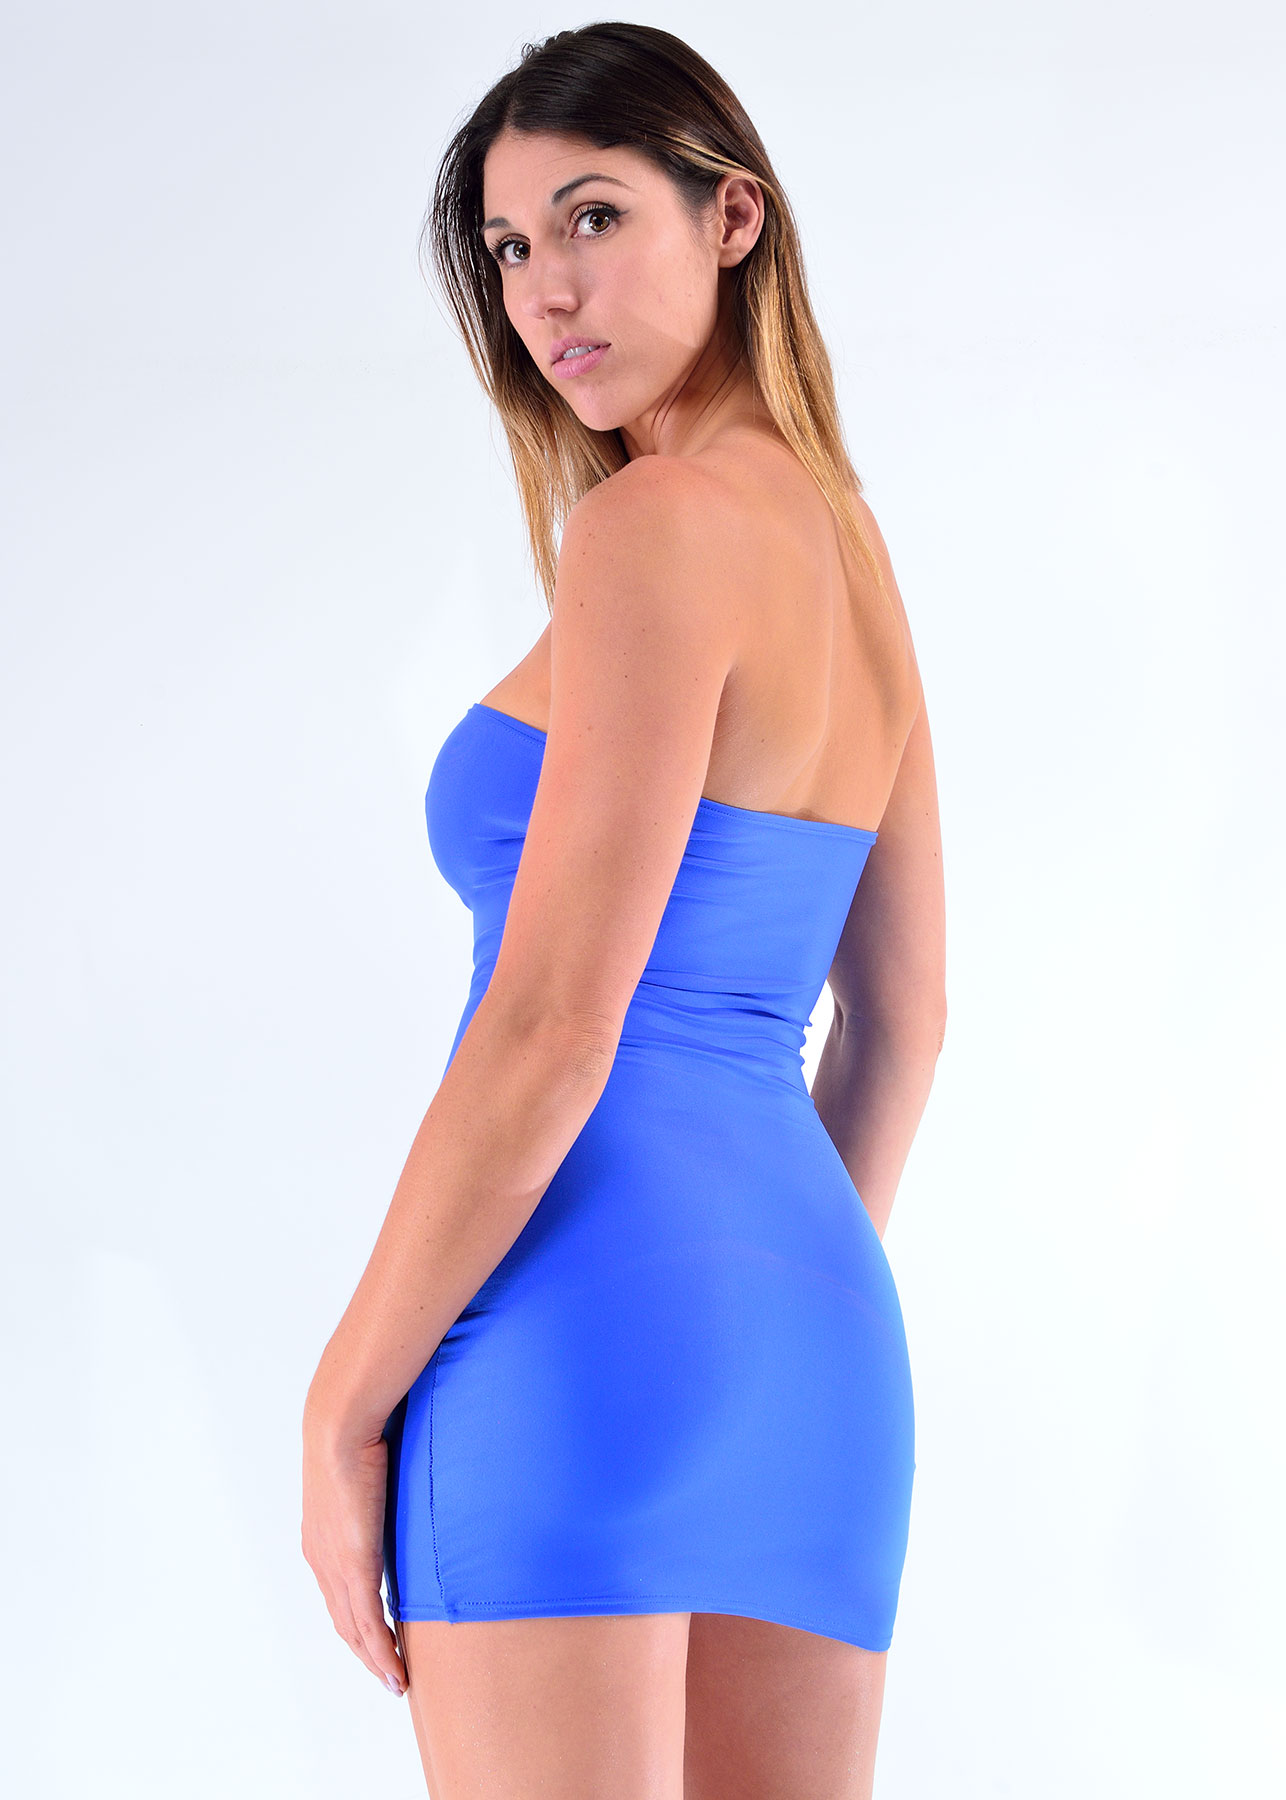 COSMOPOLITAN Strap Mini Dress [StrapLess Dress] - $79.00